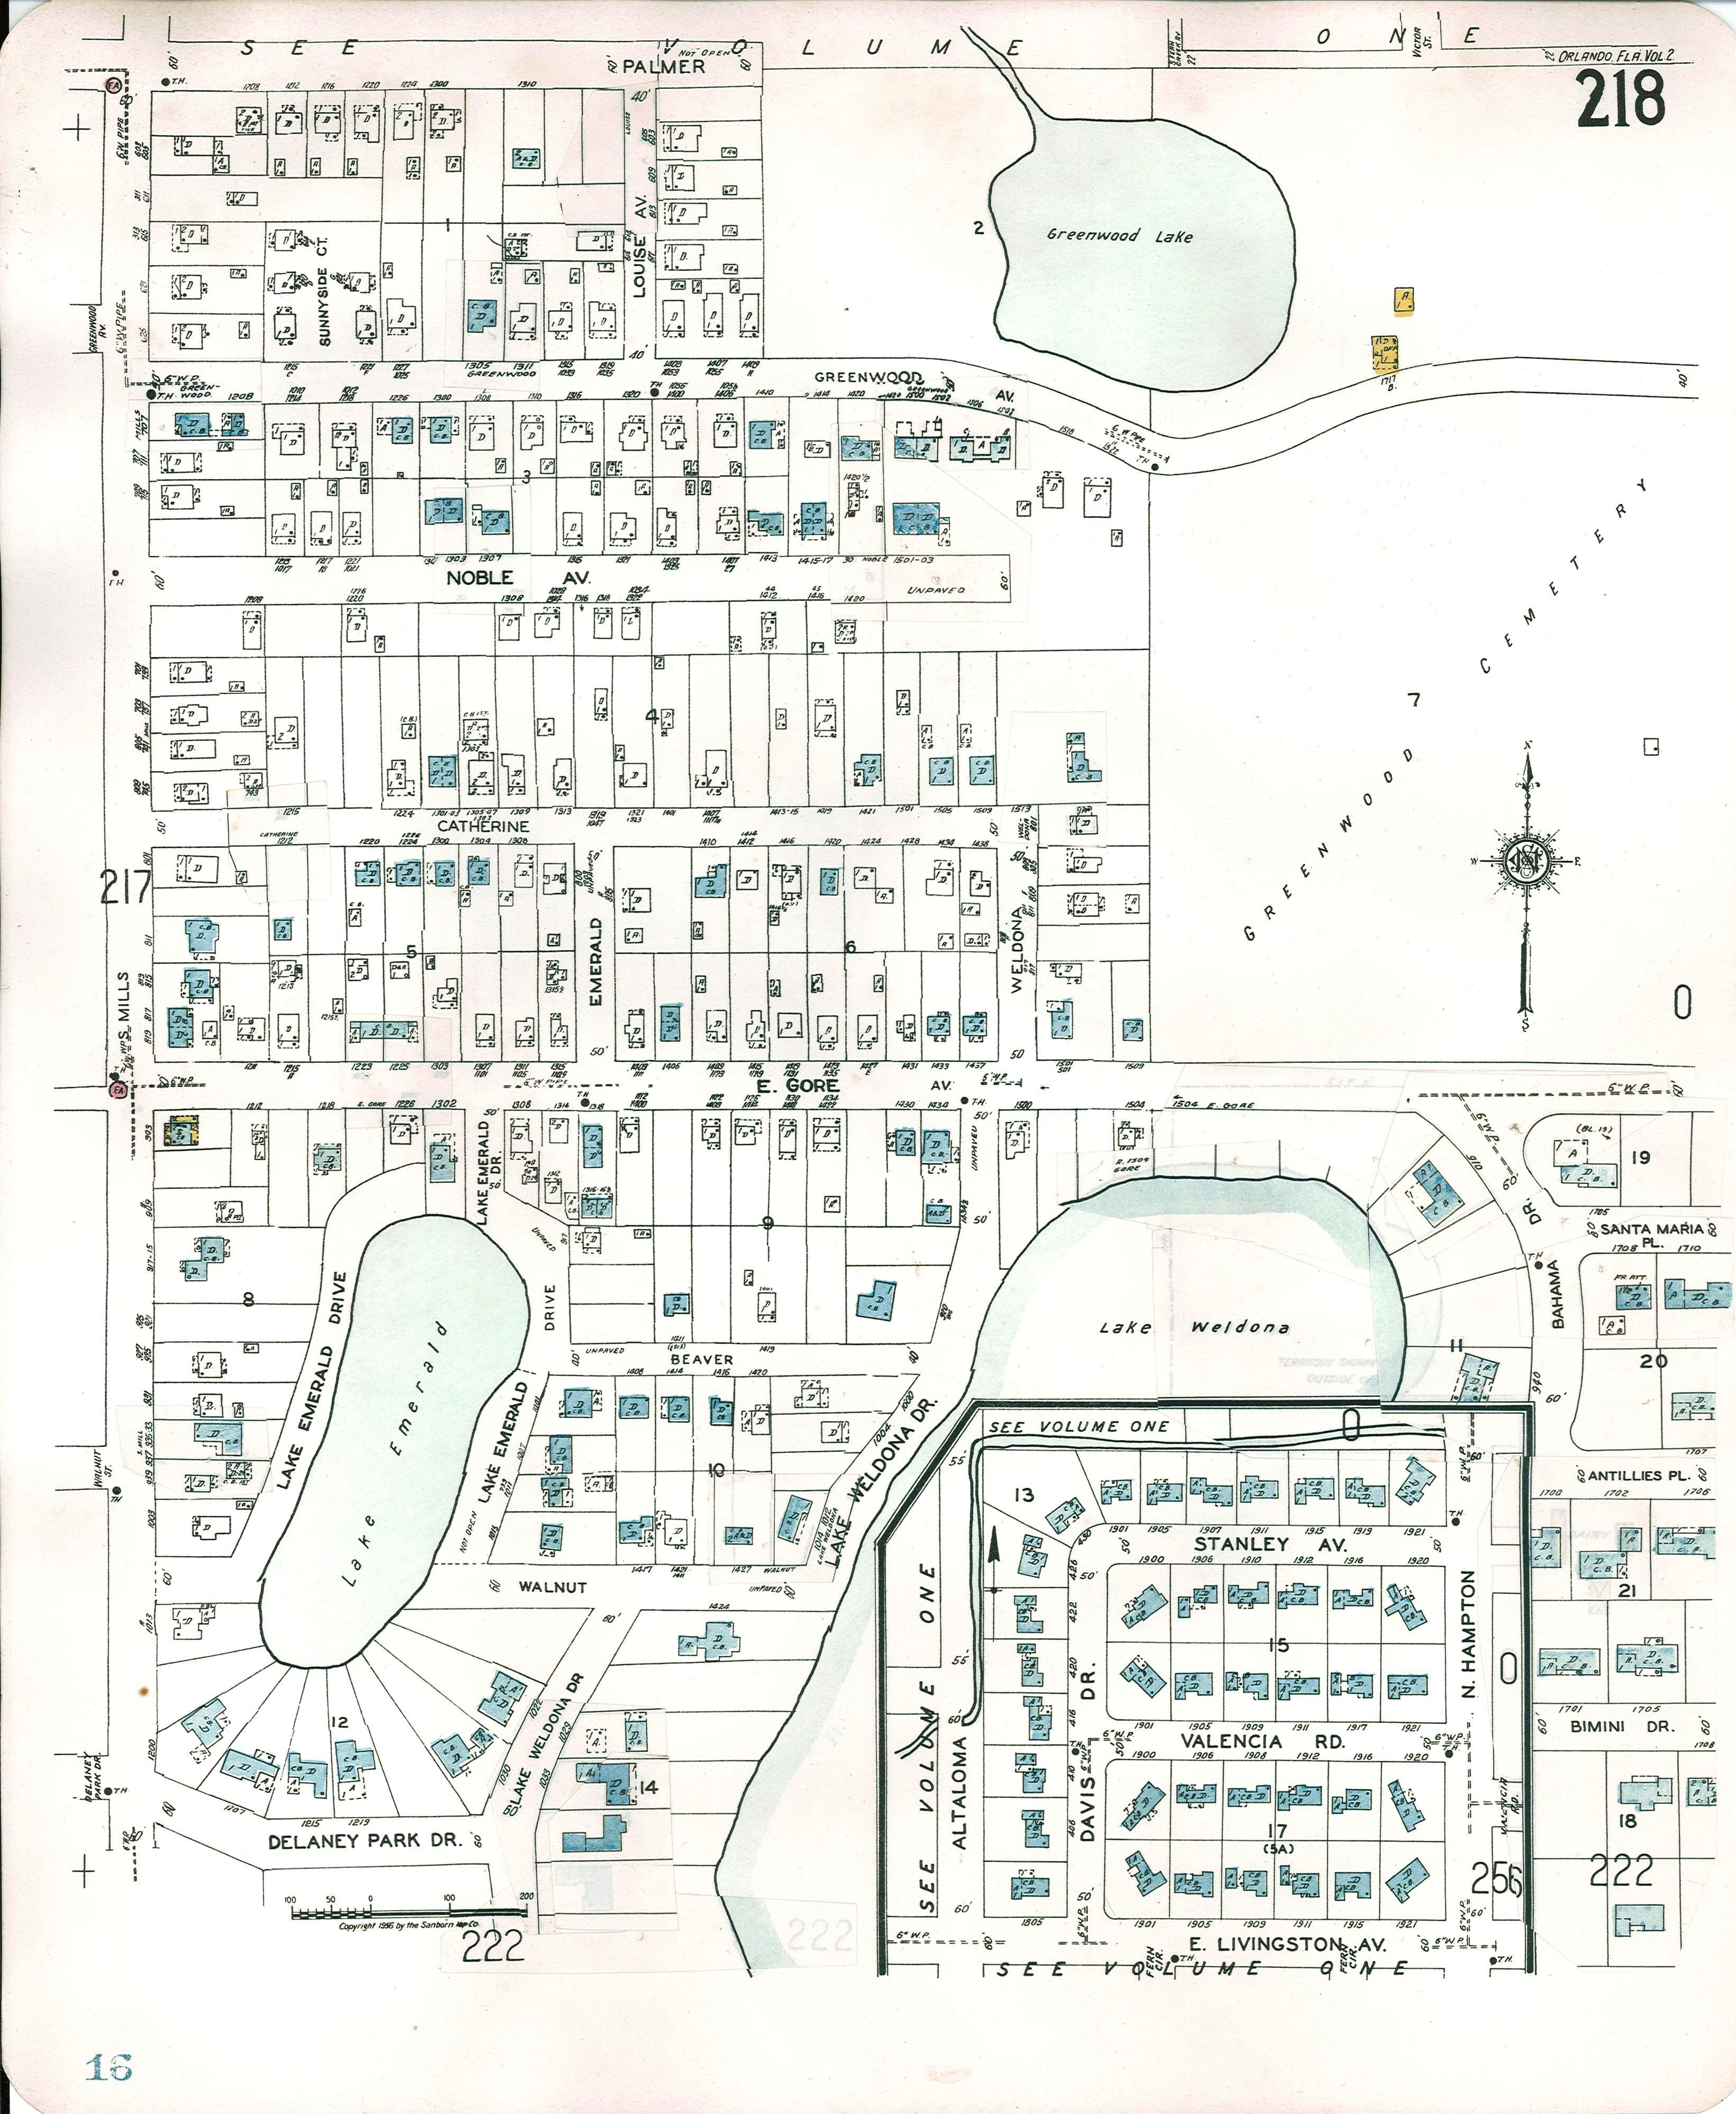 Historic Sanborn Map provided by the City